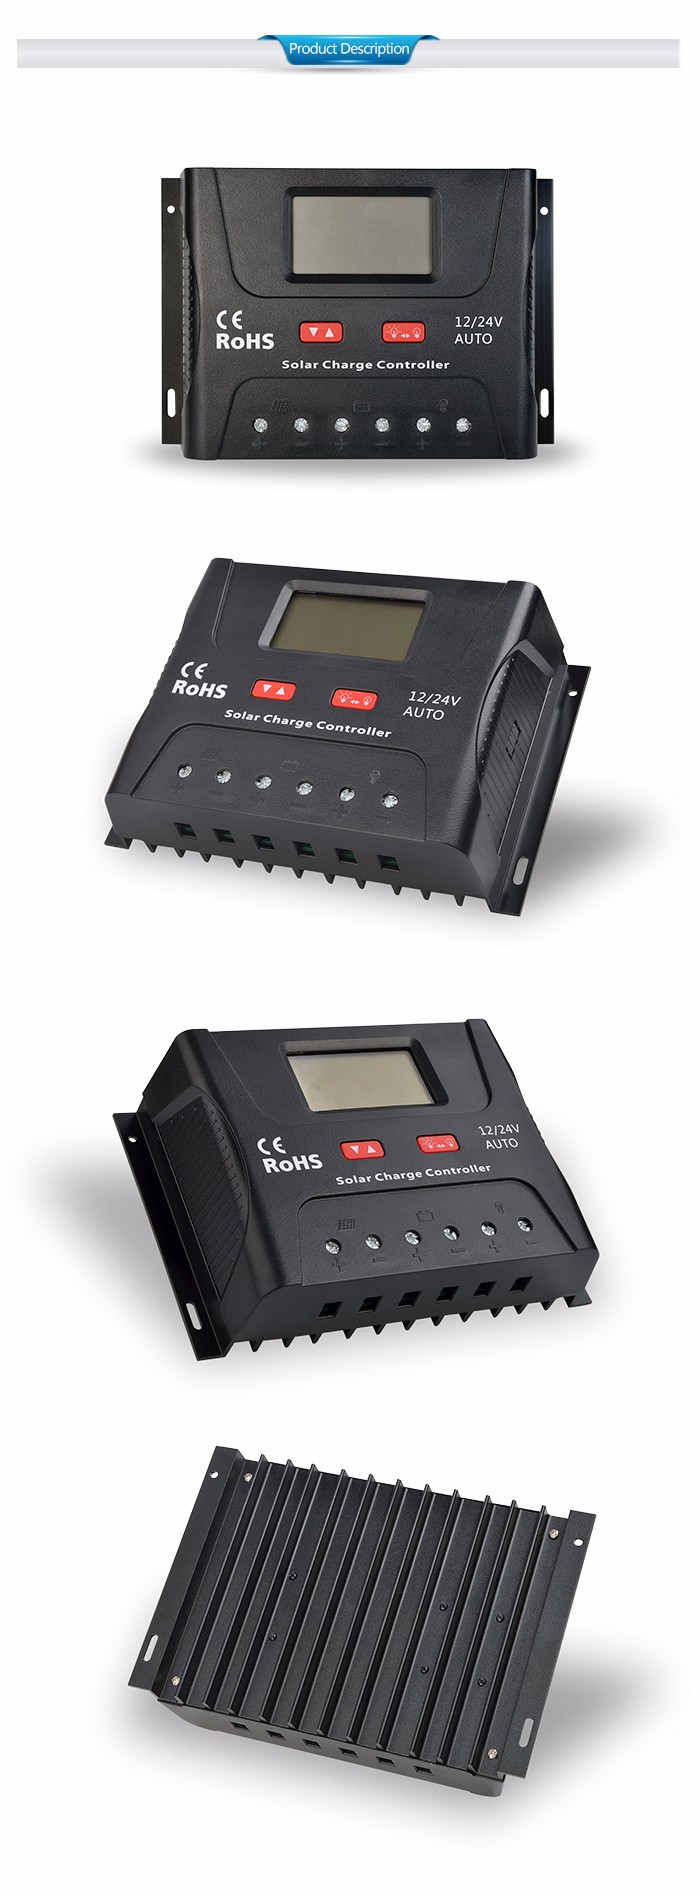 SRNE classic & typical PWM charge controller SR-HP series 60A 12/24V auto LCD screen for home power system use